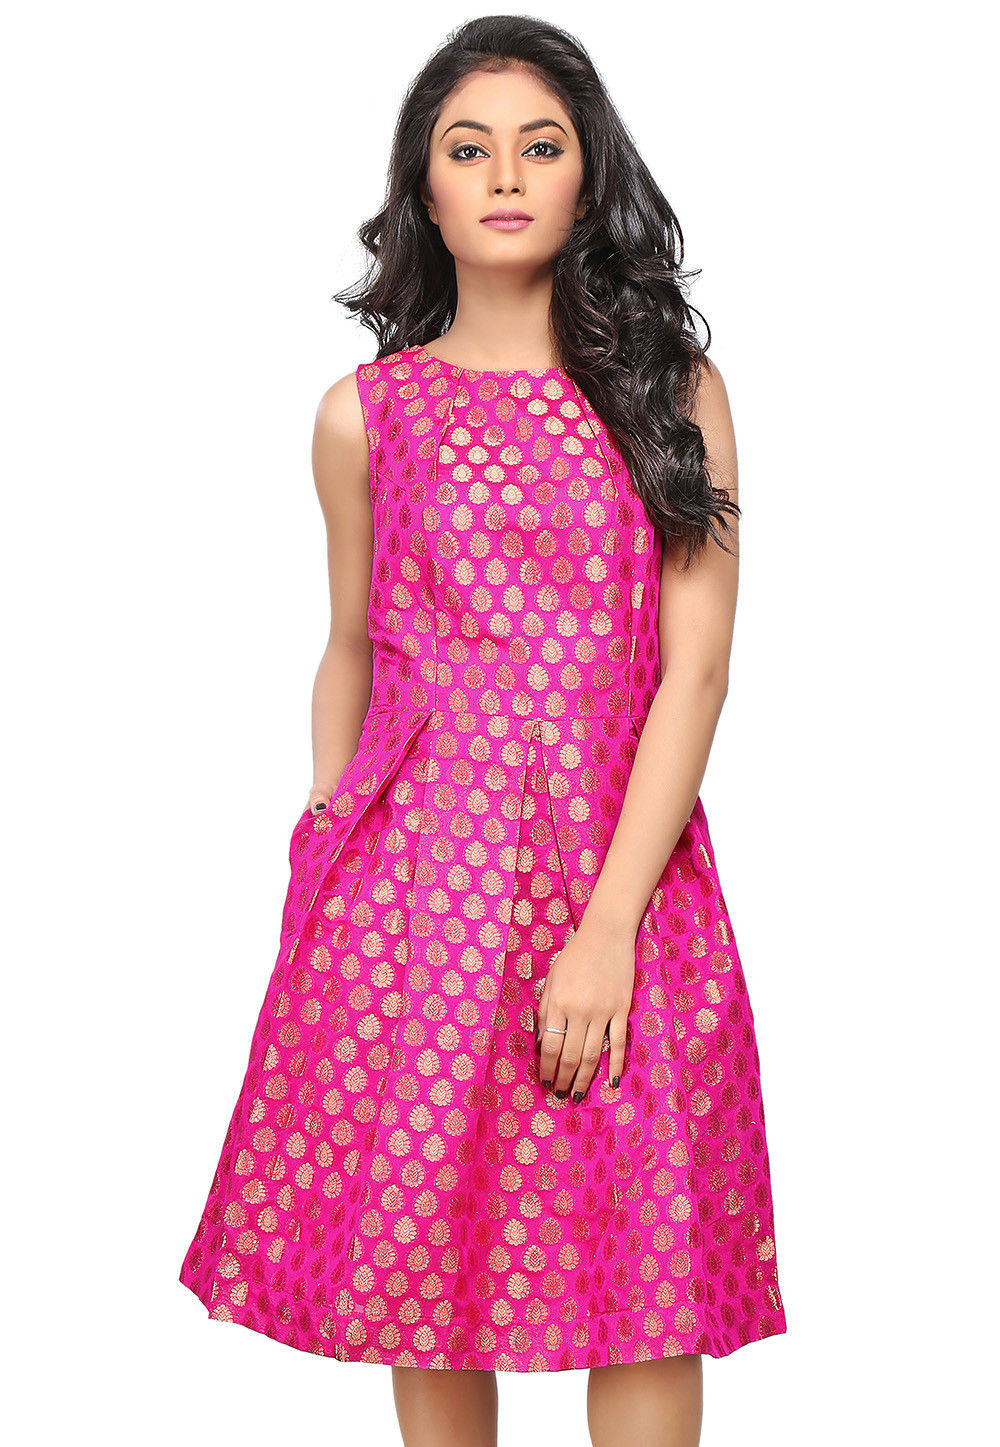 Jacquard Chanderi Silk Jacquard A Line Dress in Fuchsia